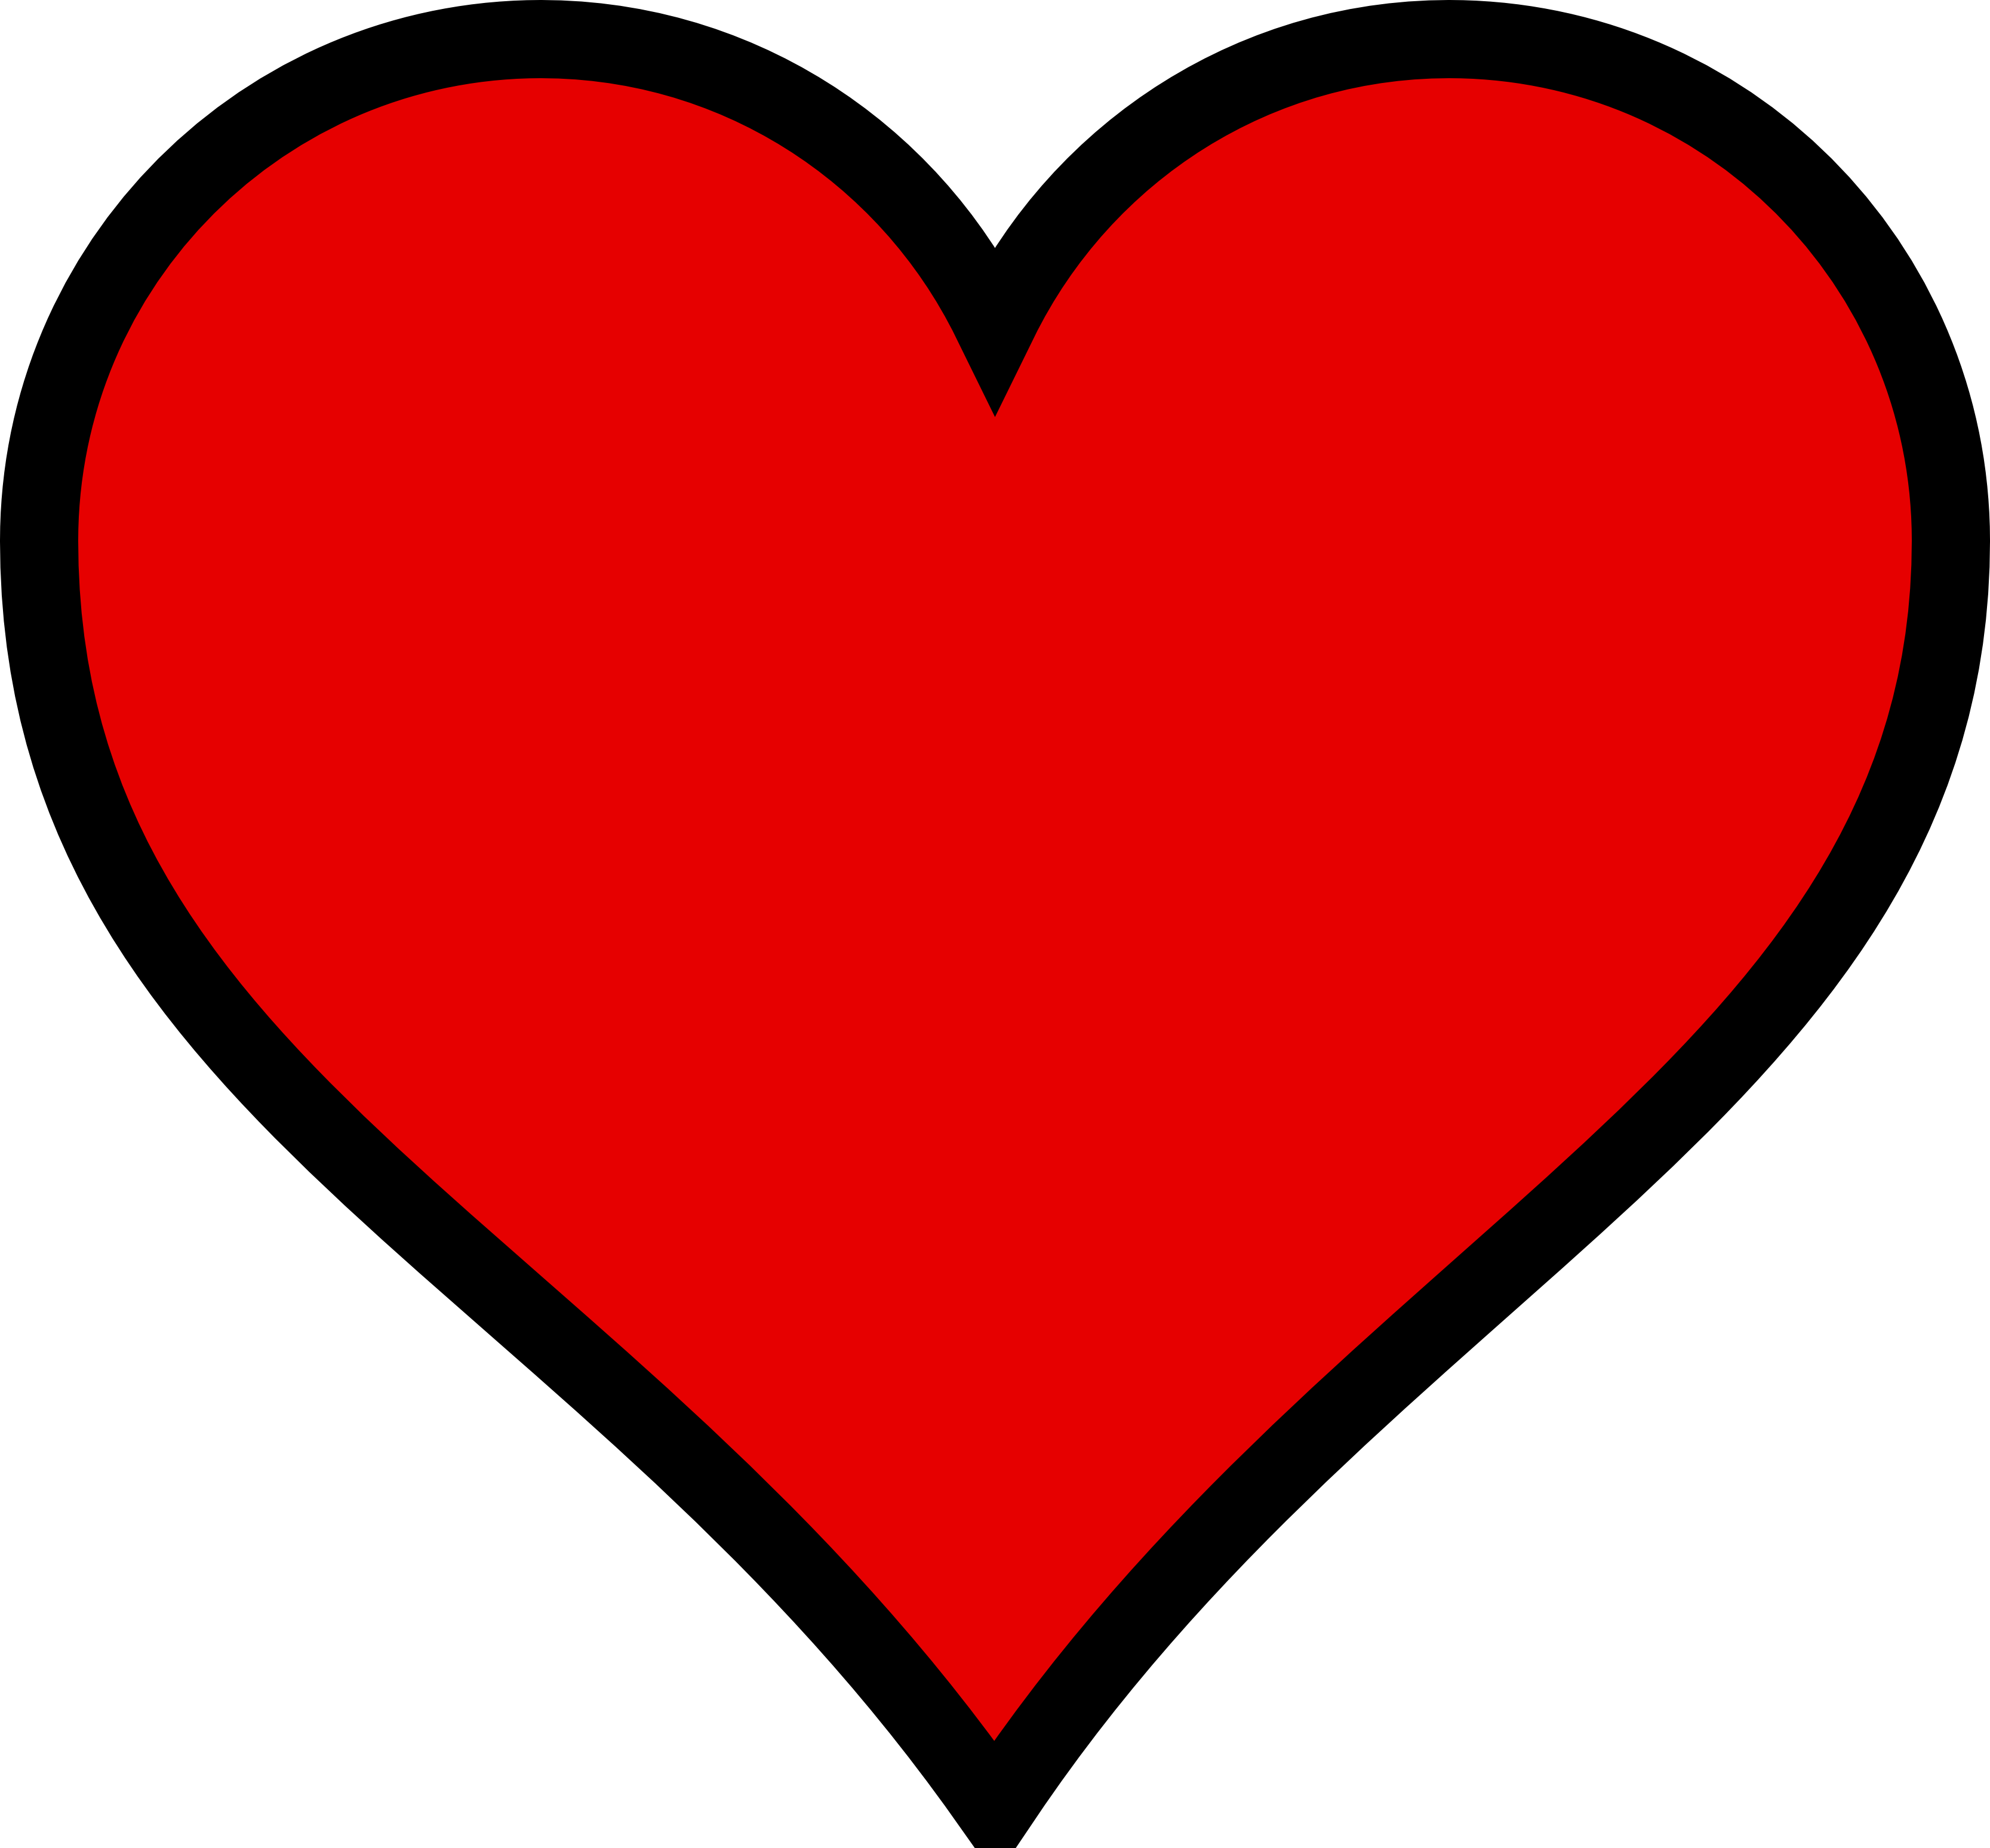 Sketch heart clipart png transparent library Red Heart Clip Art - Free Clip Art - Clipart Bay png transparent library